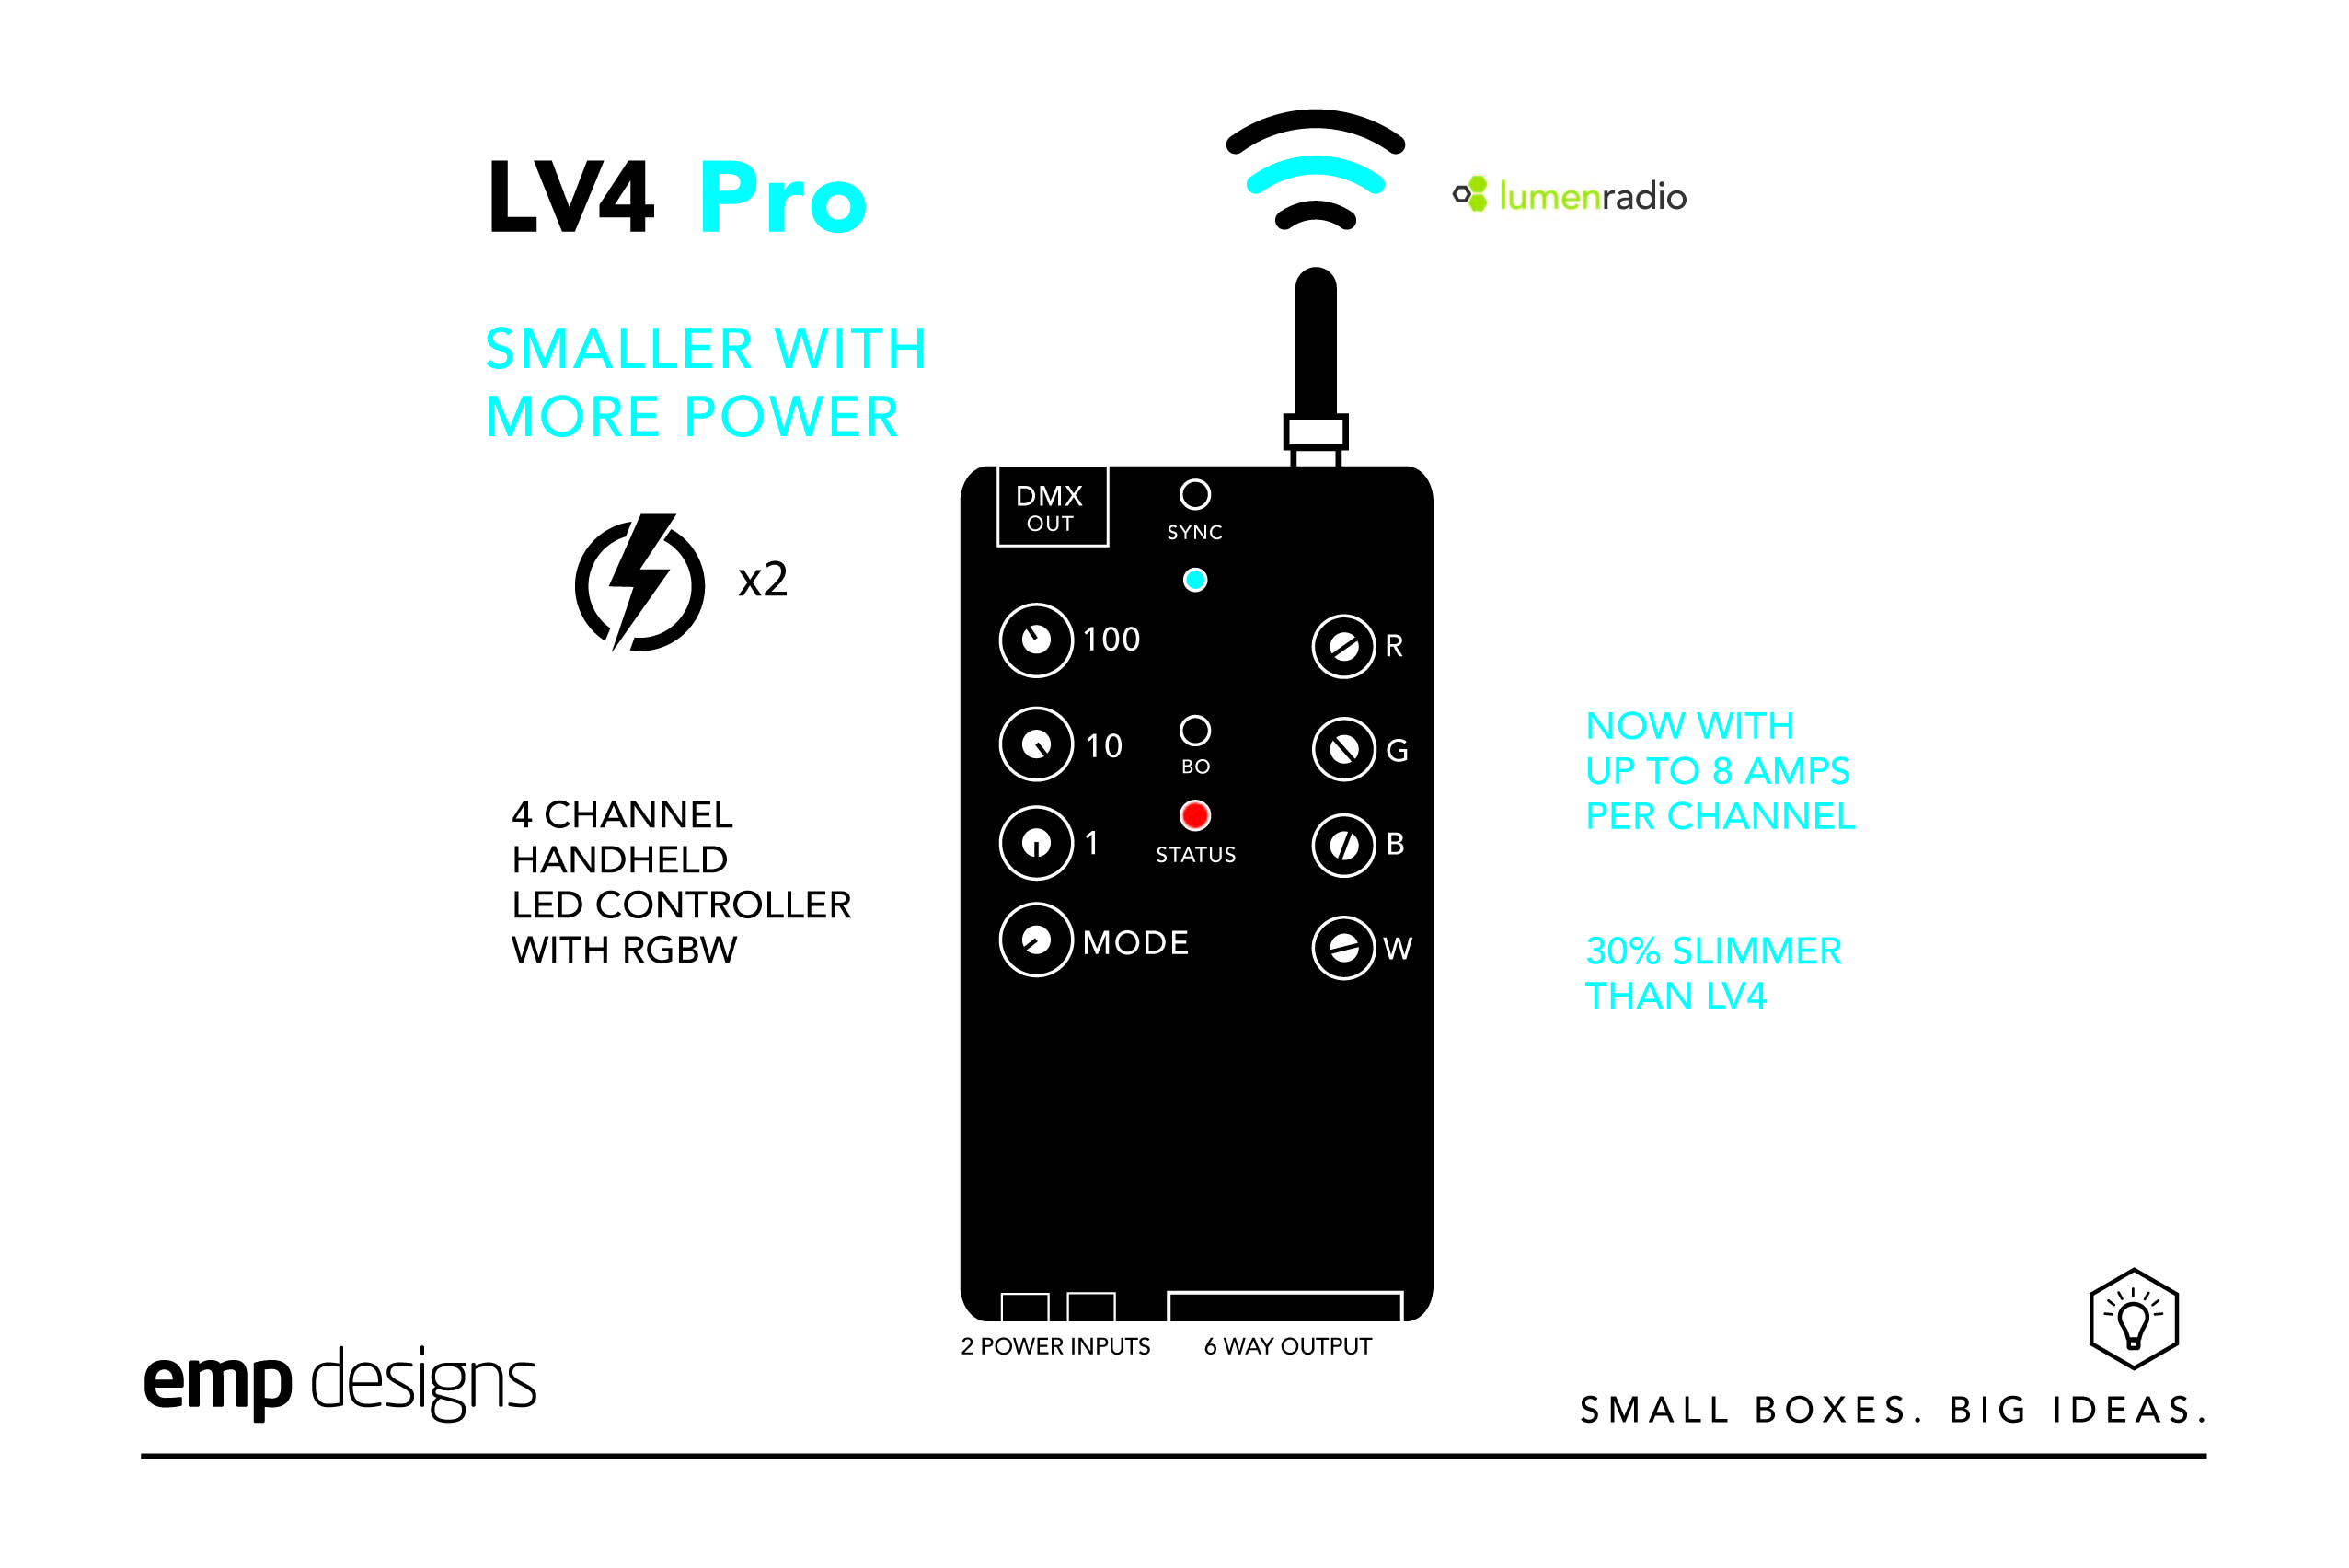 LV4 Pro is our smallest slimmest 4 channel, RGBW LED controller.